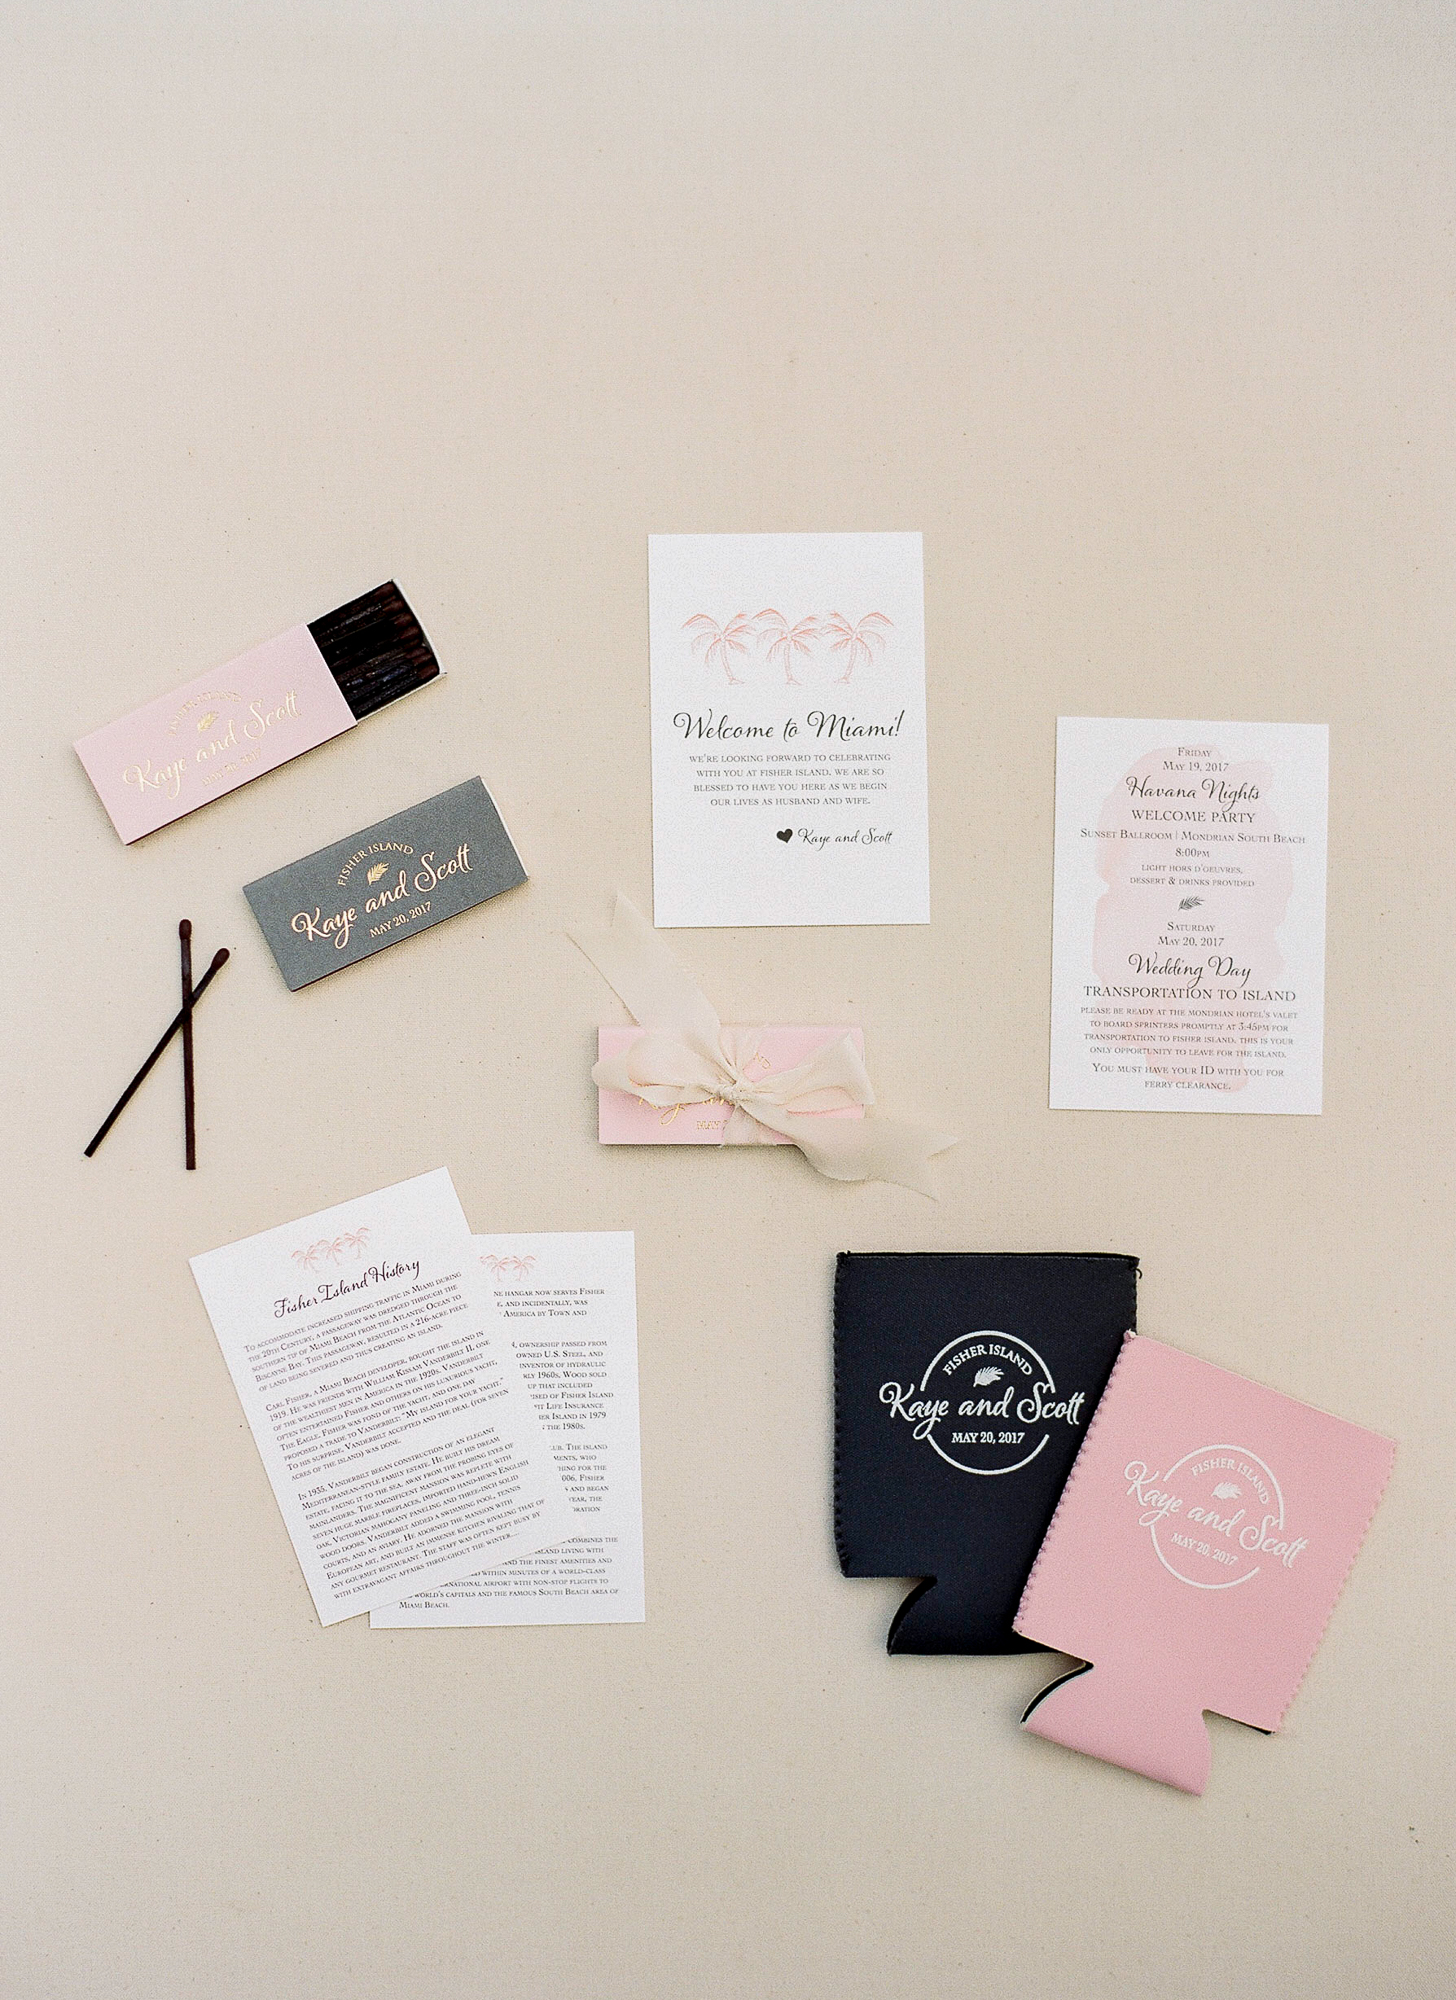 Invitation suite with matches and monogramed gifts.